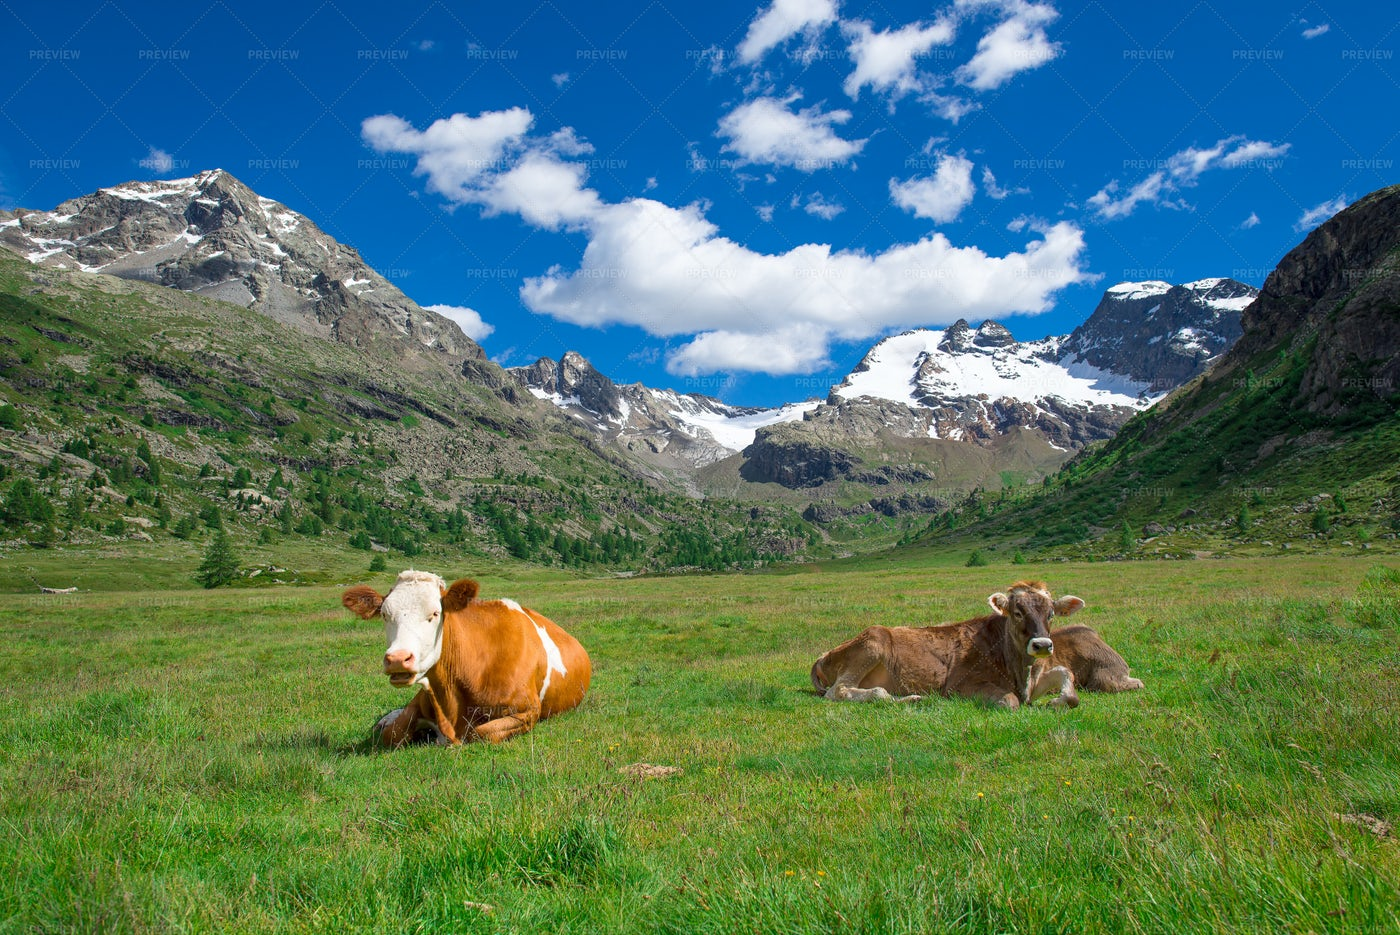 Grazing Cows In The Mountains: Stock Photos